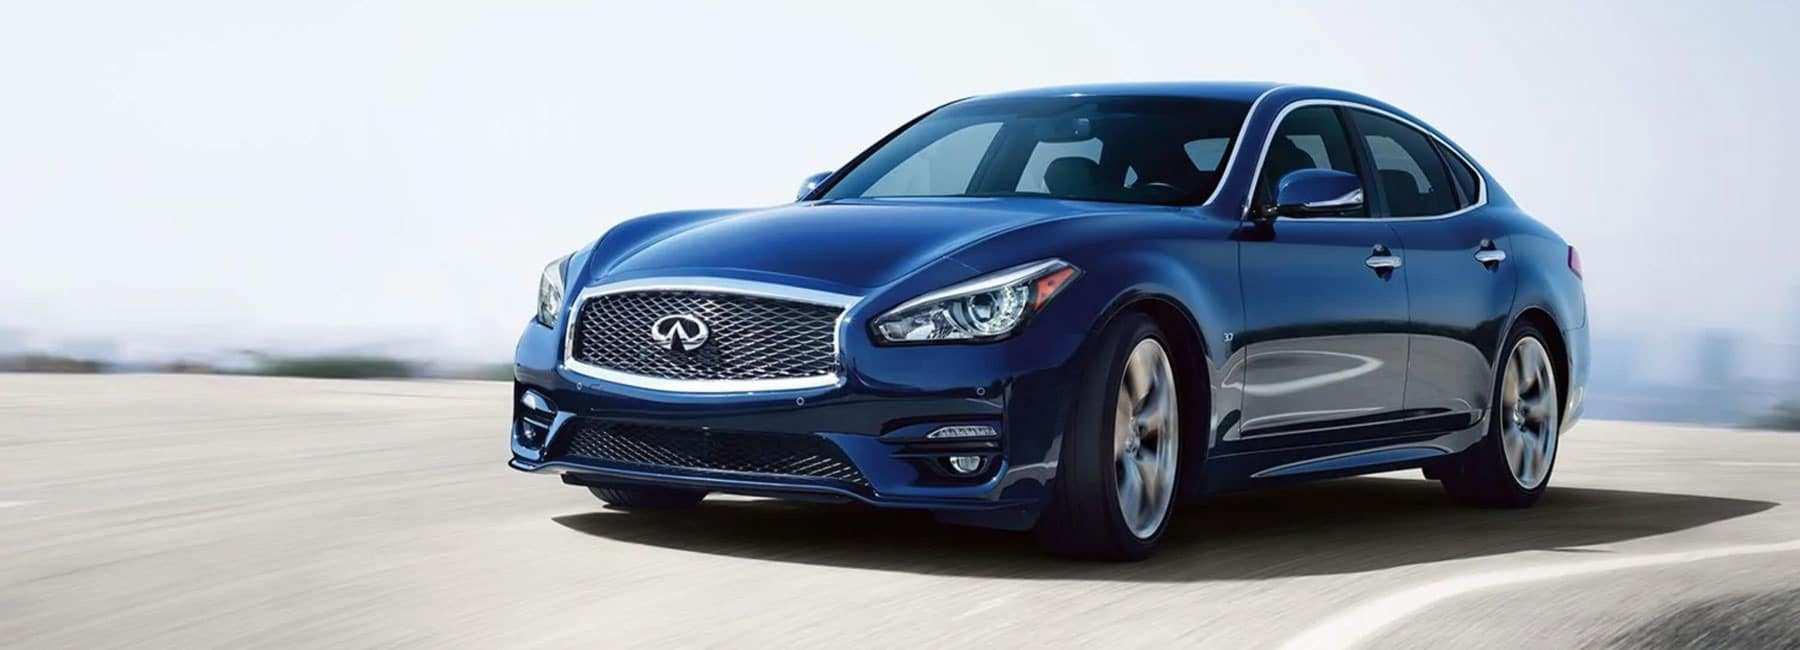 36 The Best 2019 Infiniti Q70 Review New Model And Performance